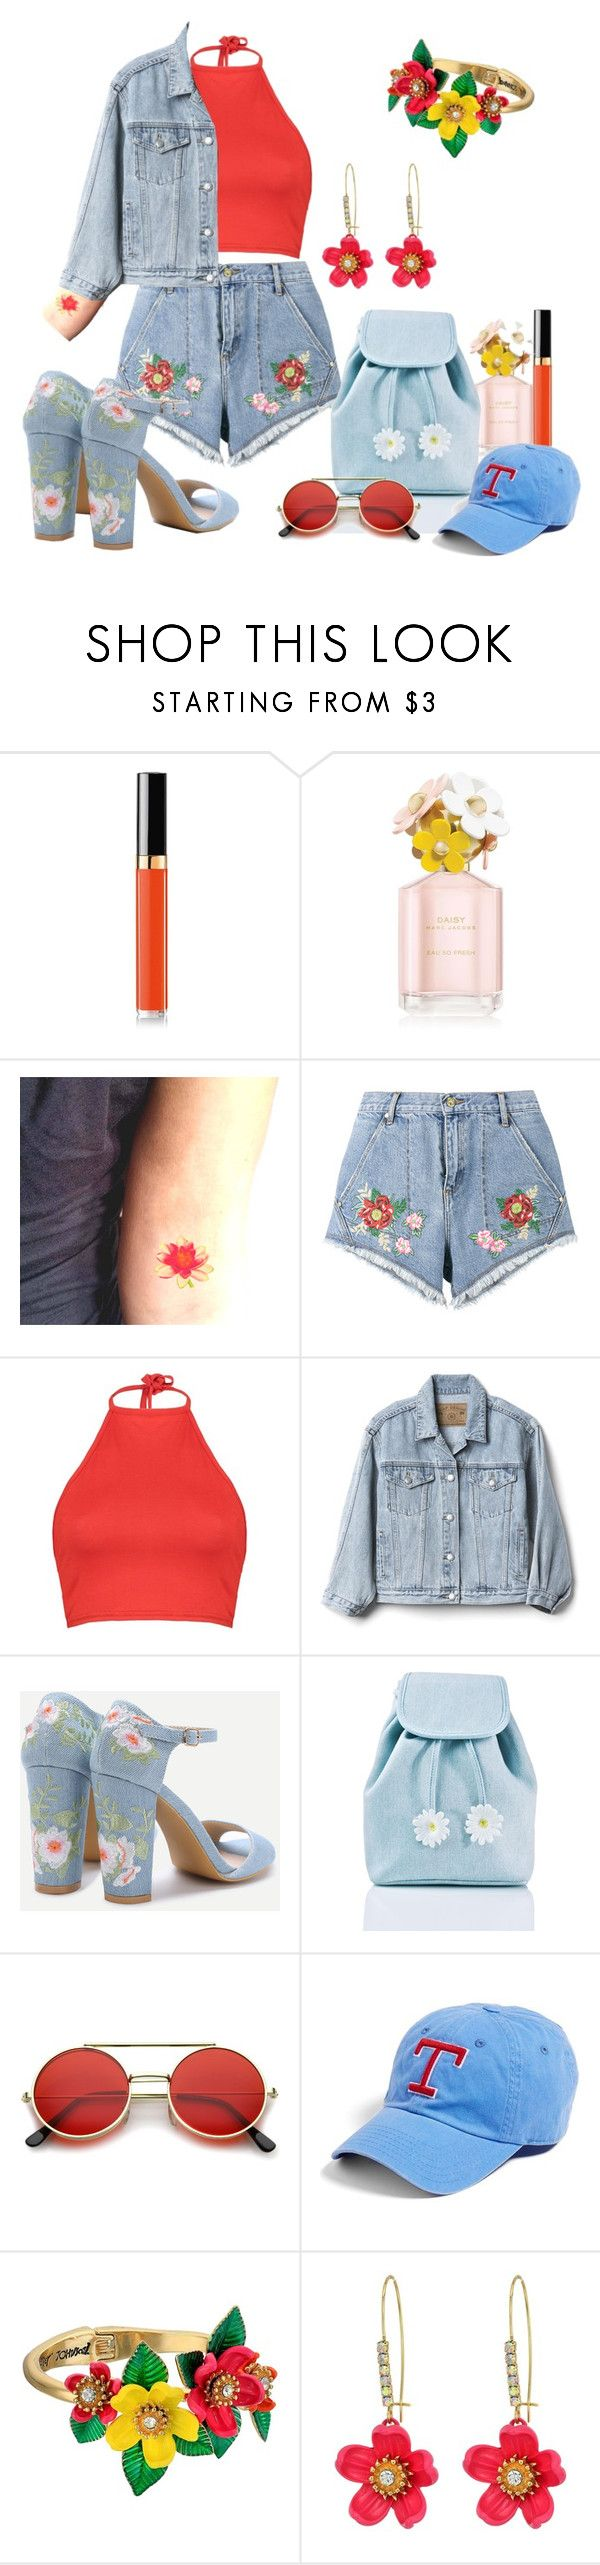 """""""Flower Power"""" by arts22 on Polyvore featuring Mode, Chanel, Marc Jacobs, House of Holland, Boohoo, Gap, Sugarbaby, American Needle und Betsey Johnson"""